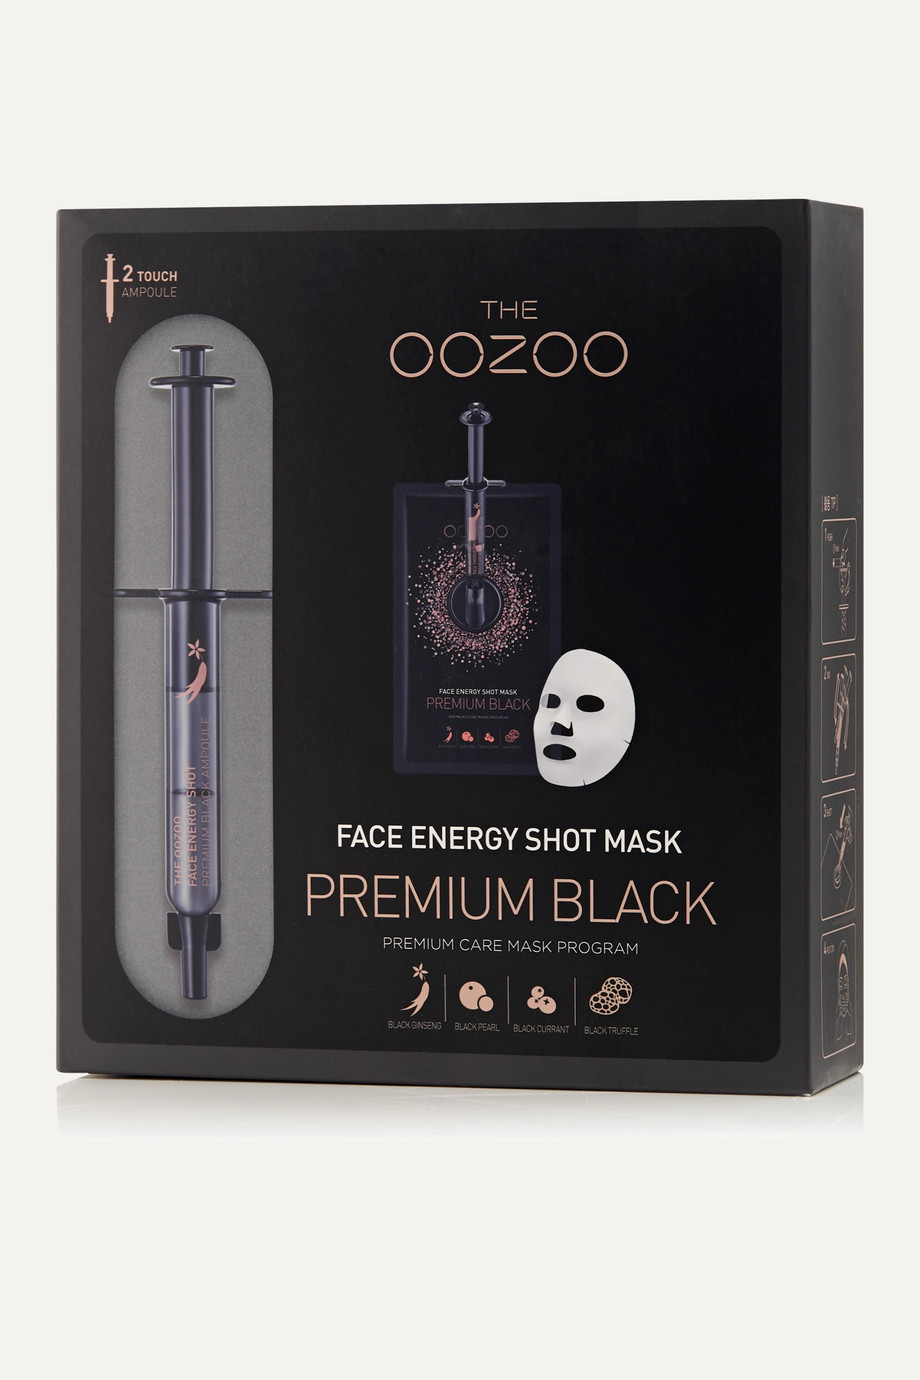 THE OOZOO Face Energy Shot Mask x 5